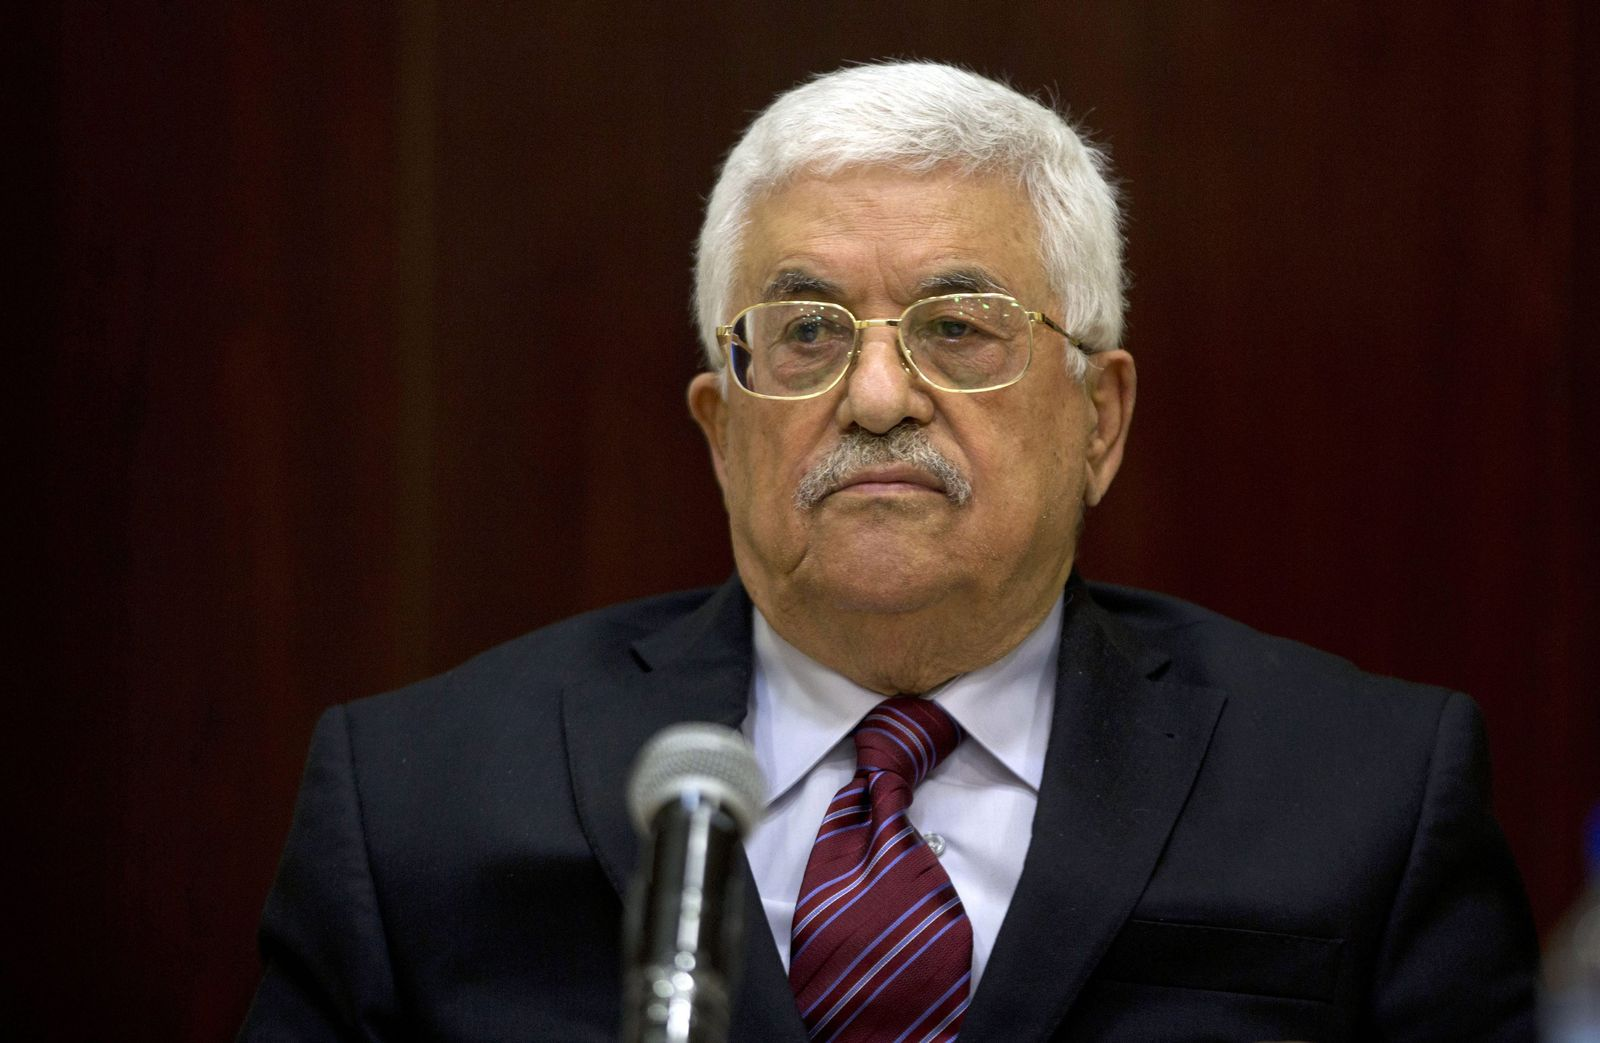 PLO Executive Committee meets on PLC meeting